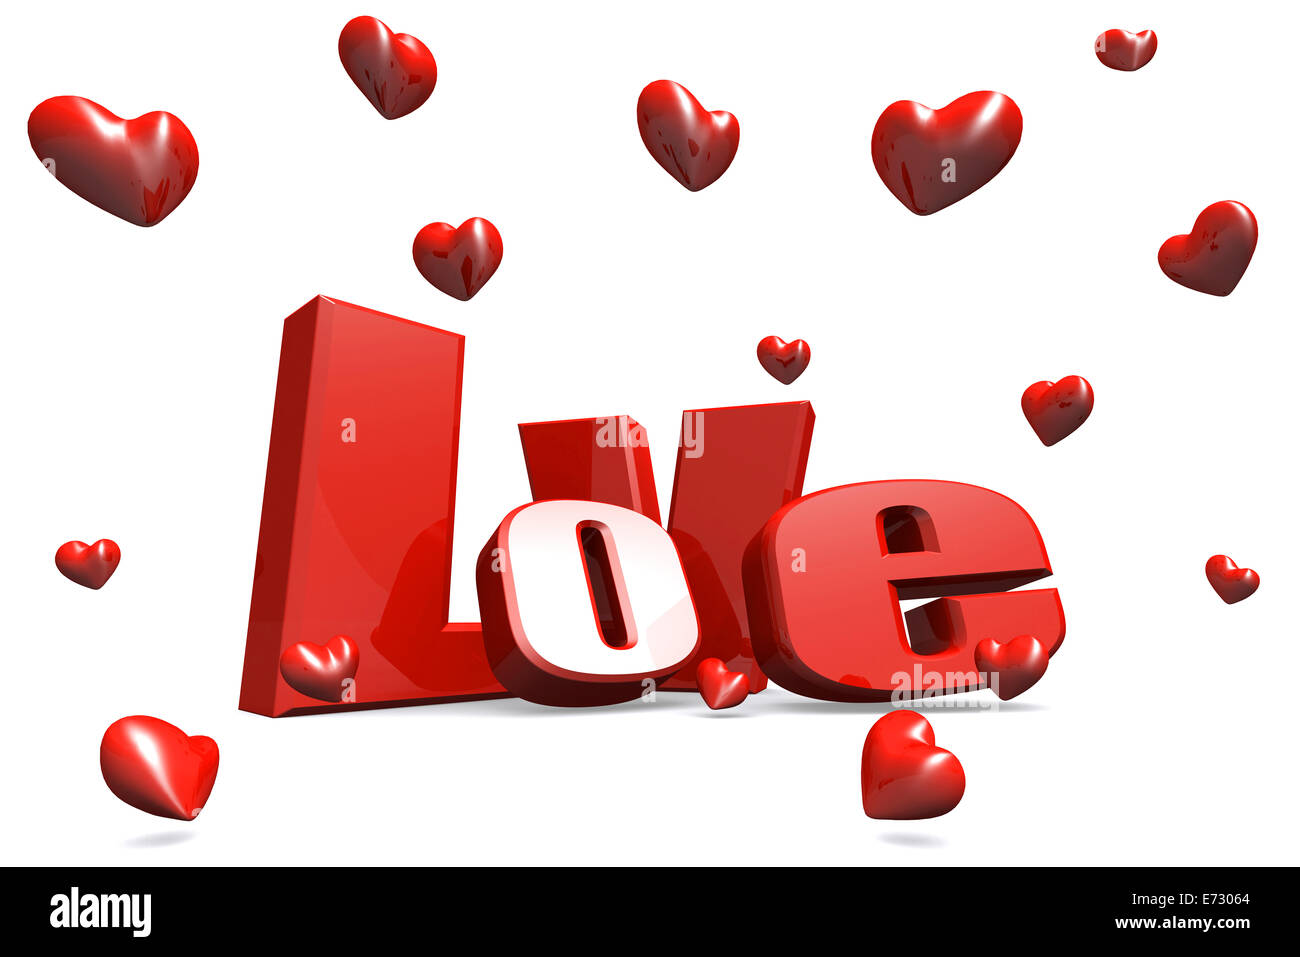 Love 3D text on white, happy valentines day background - Stock Image